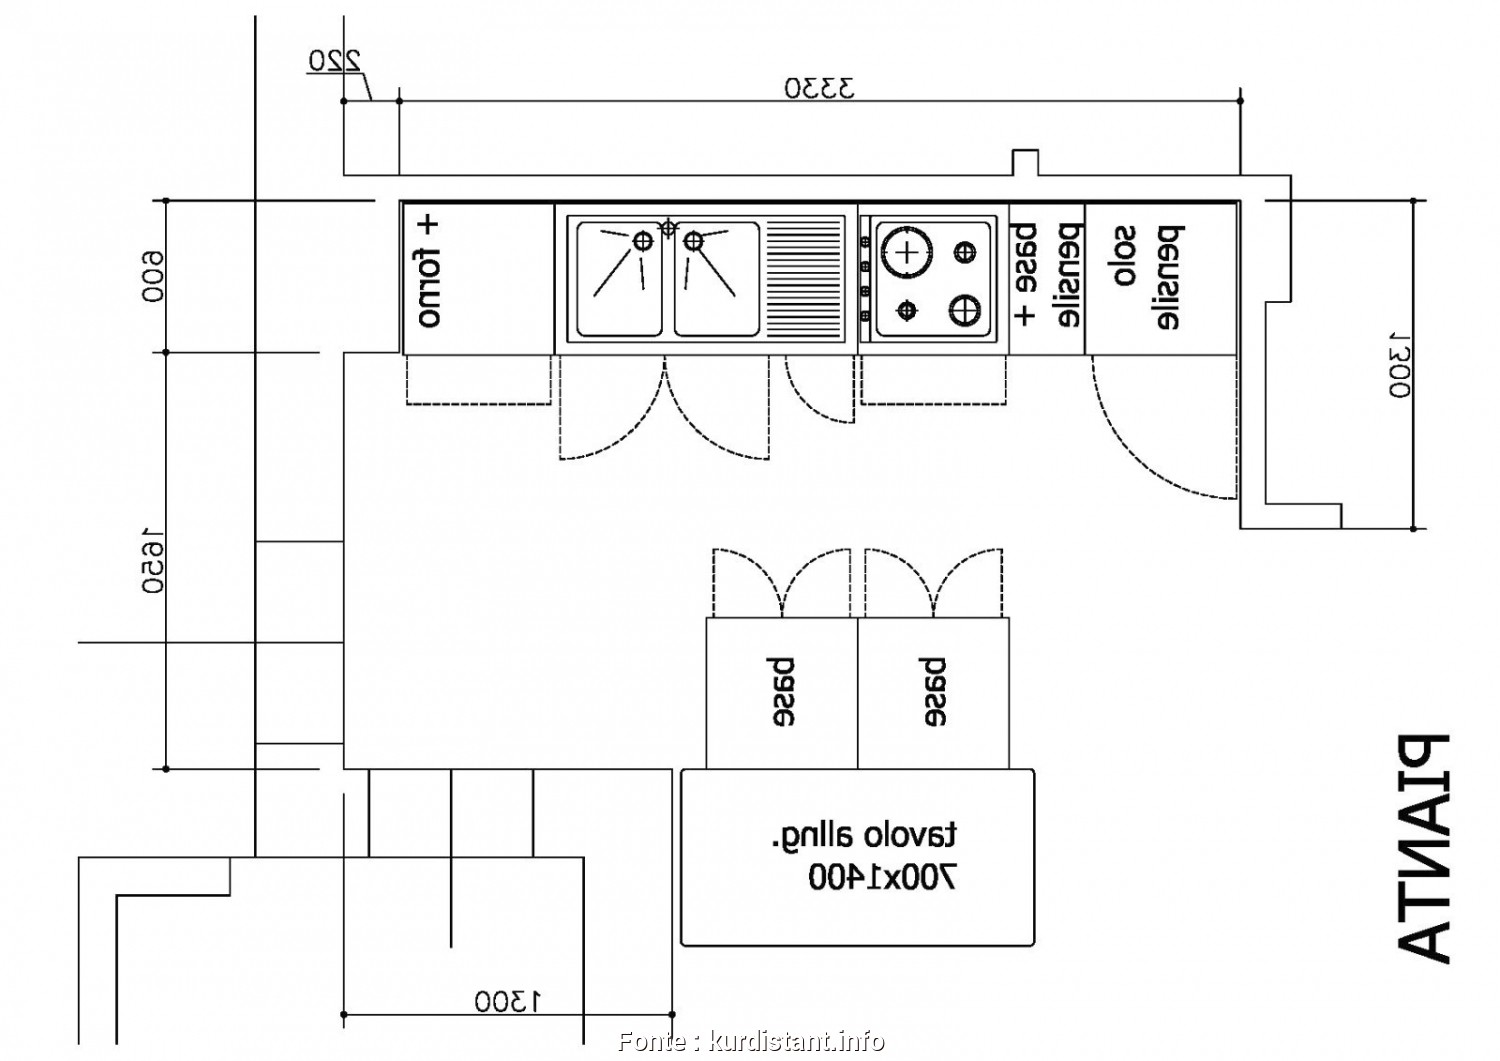 Dwg Cucina Prospetto, Completare Awesome Arredi Cucina, Images, House Interior, Kurdistant.Info